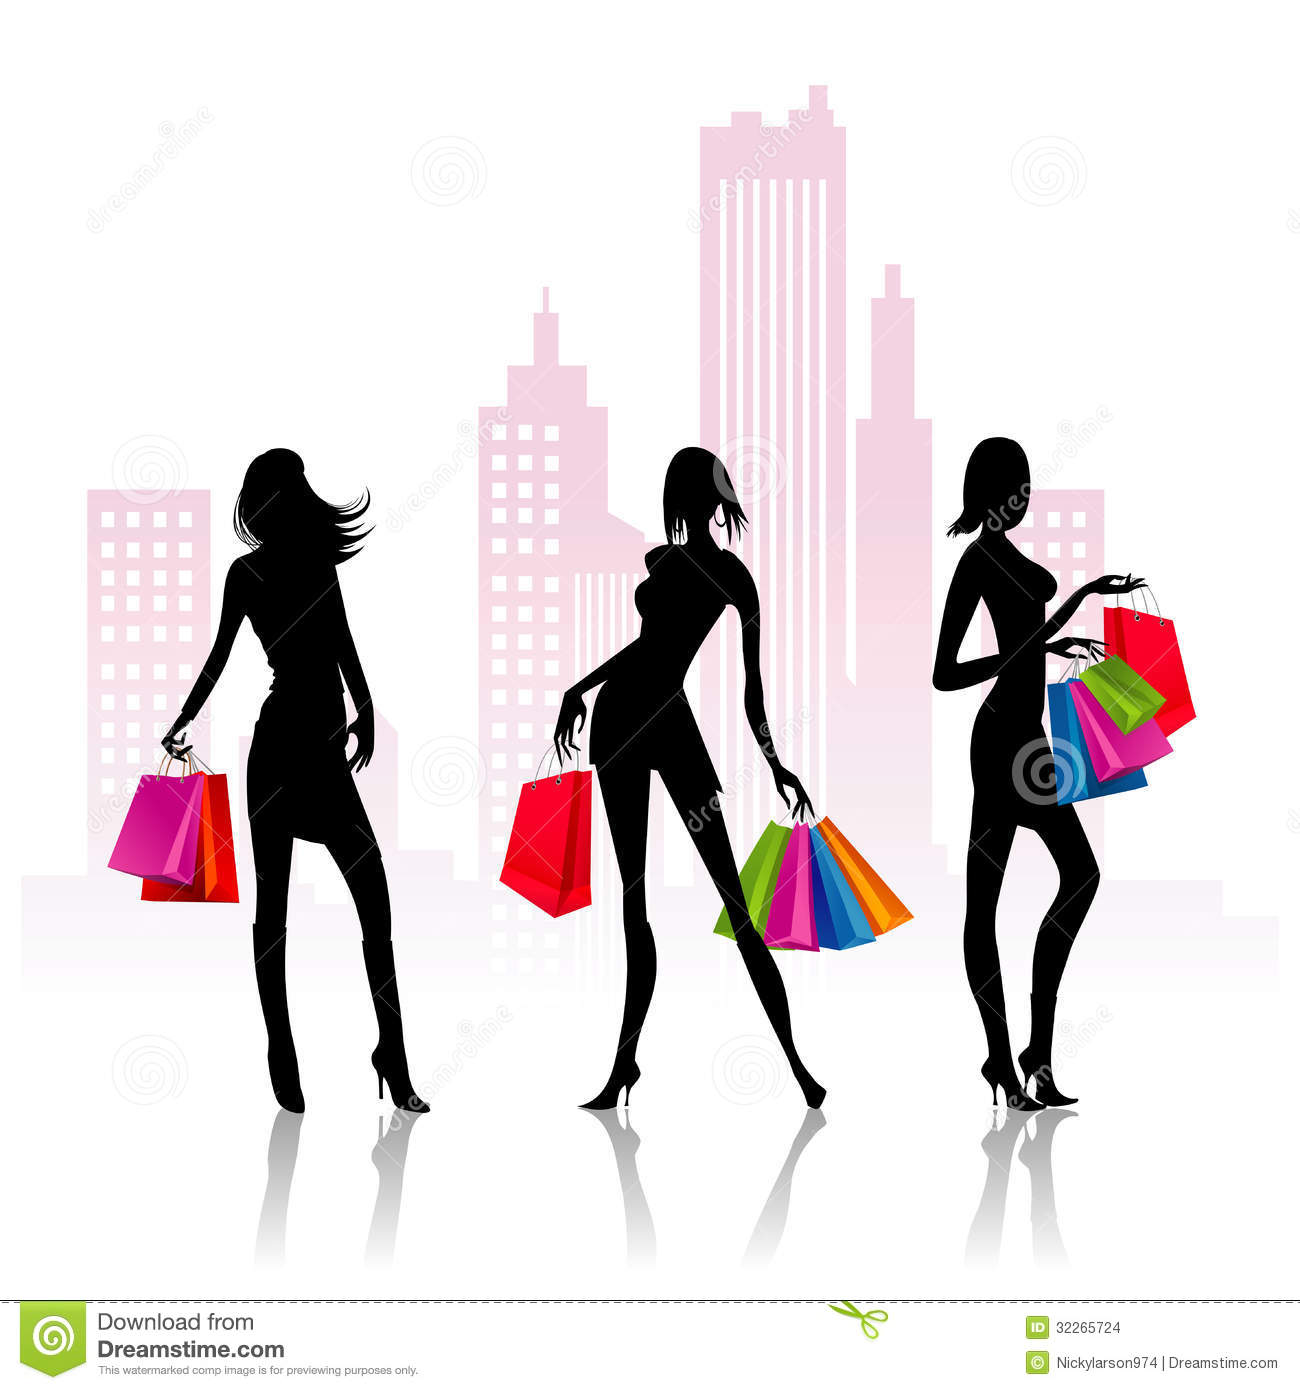 Find girls shopping Stock Images in HD and millions of other royalty-free stock photos, illustrations, and vectors in the Shutterstock collection. Thousands of new, high-quality pictures added every day. Women are shopping In the summer she is using a credit card and enjoys shopping.